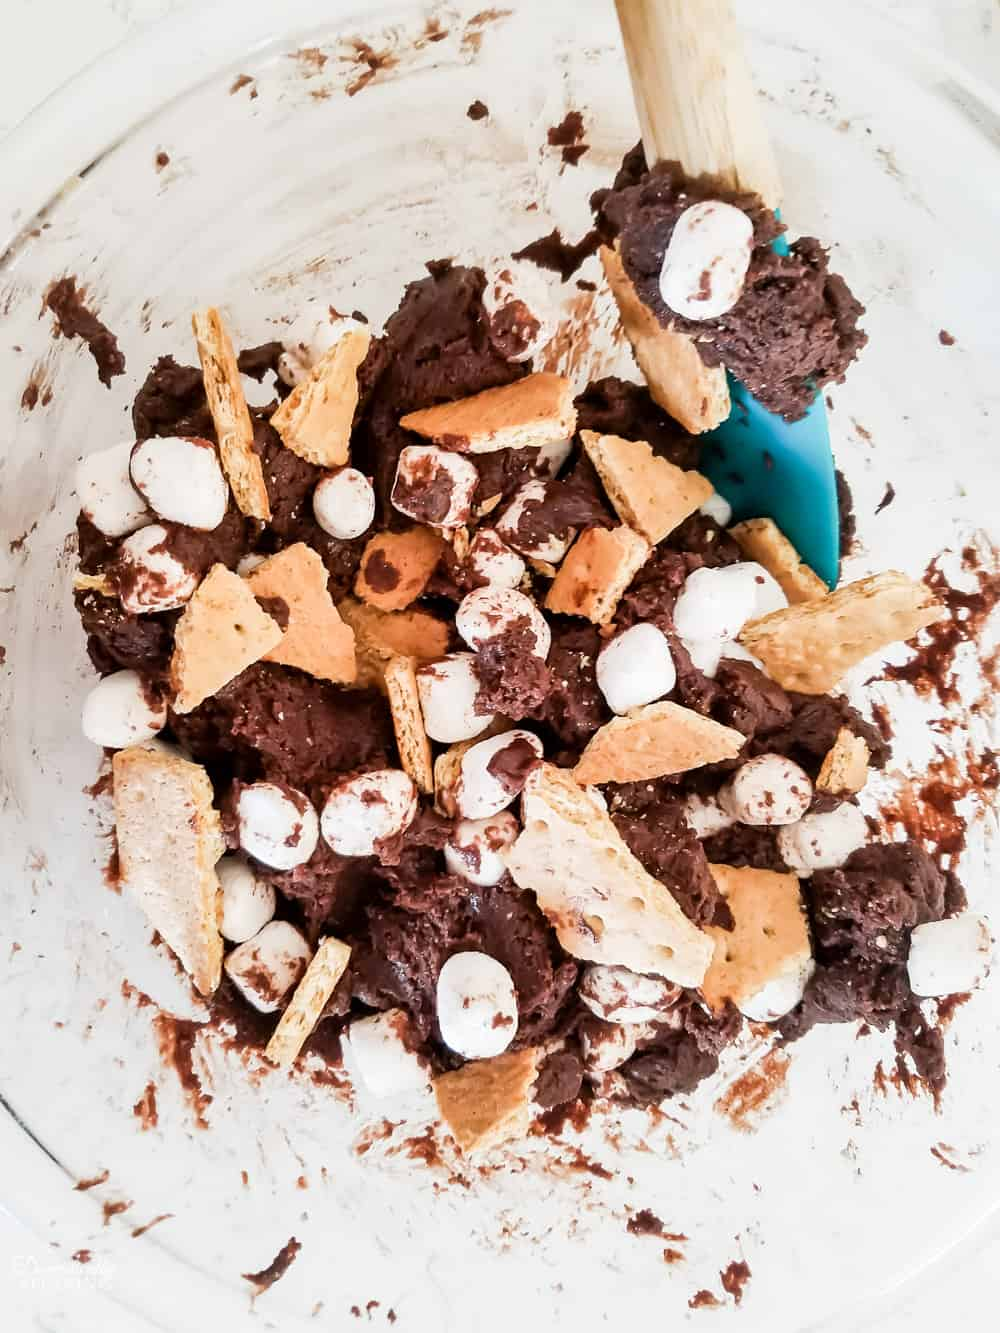 Adding the mini marshmallows and chunks of graham crackers.